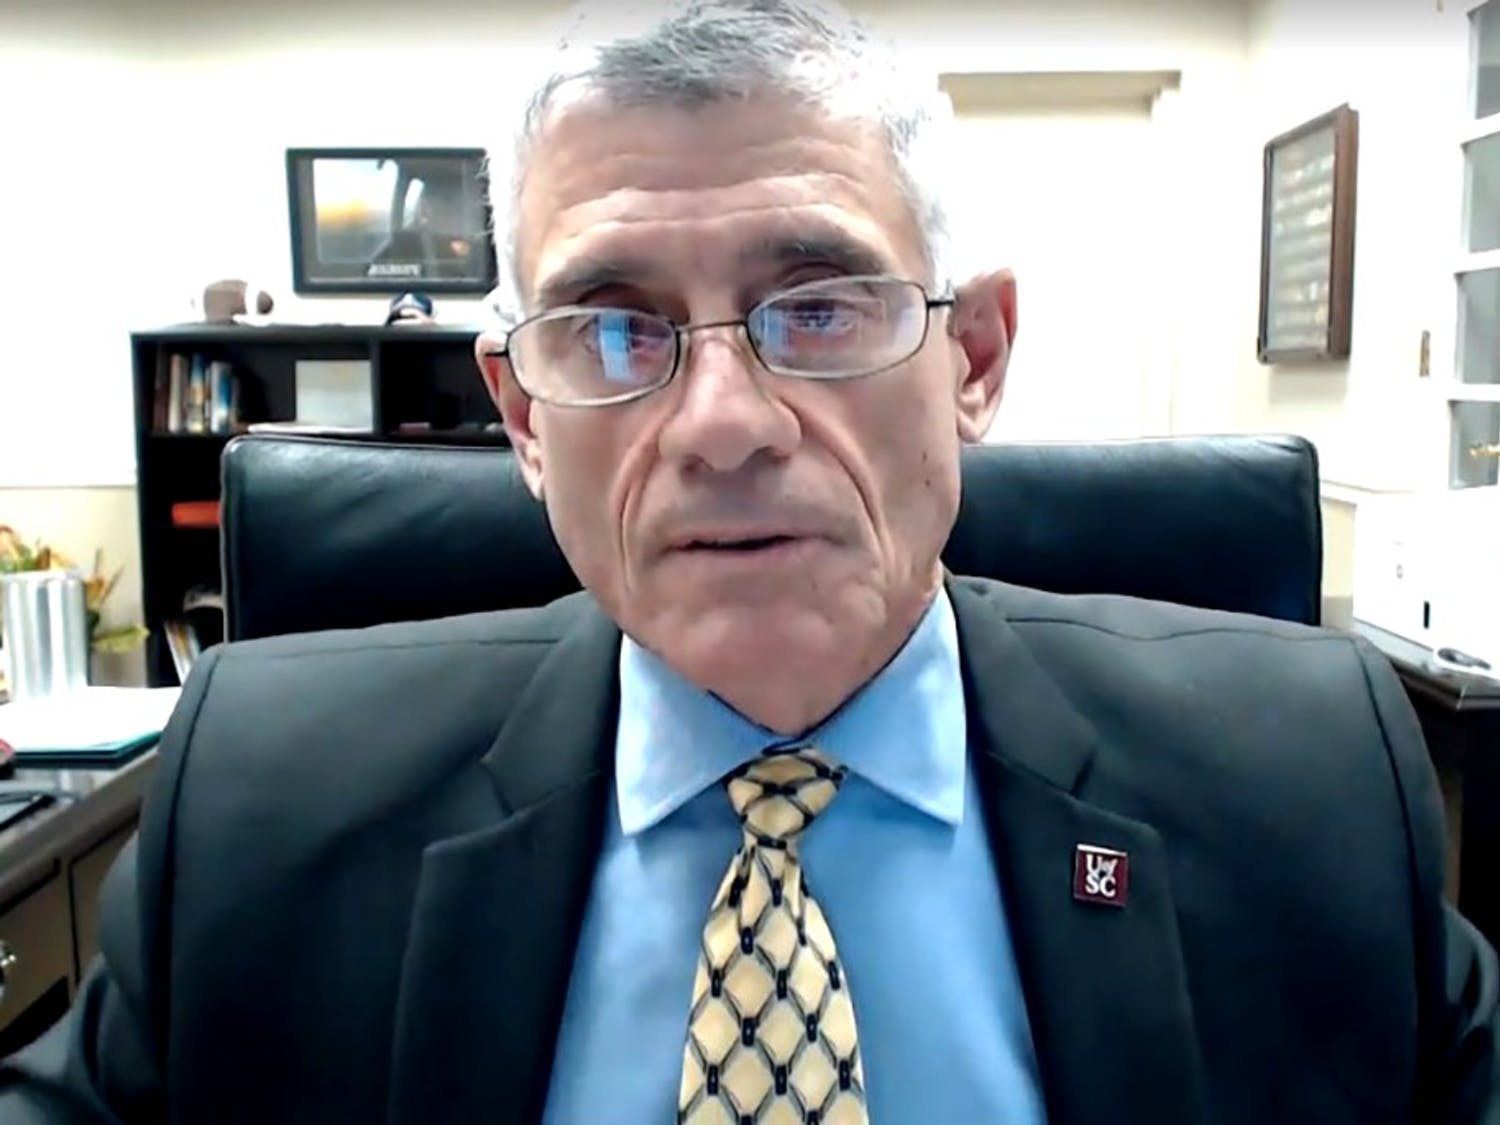 University President Bob Caslen addresses students and families during the virtual town hall on Wednesday, Nov. 4. Caslen and Provost William Tate discussed topics such as December's virtual commencement and what the spring semester will look like.